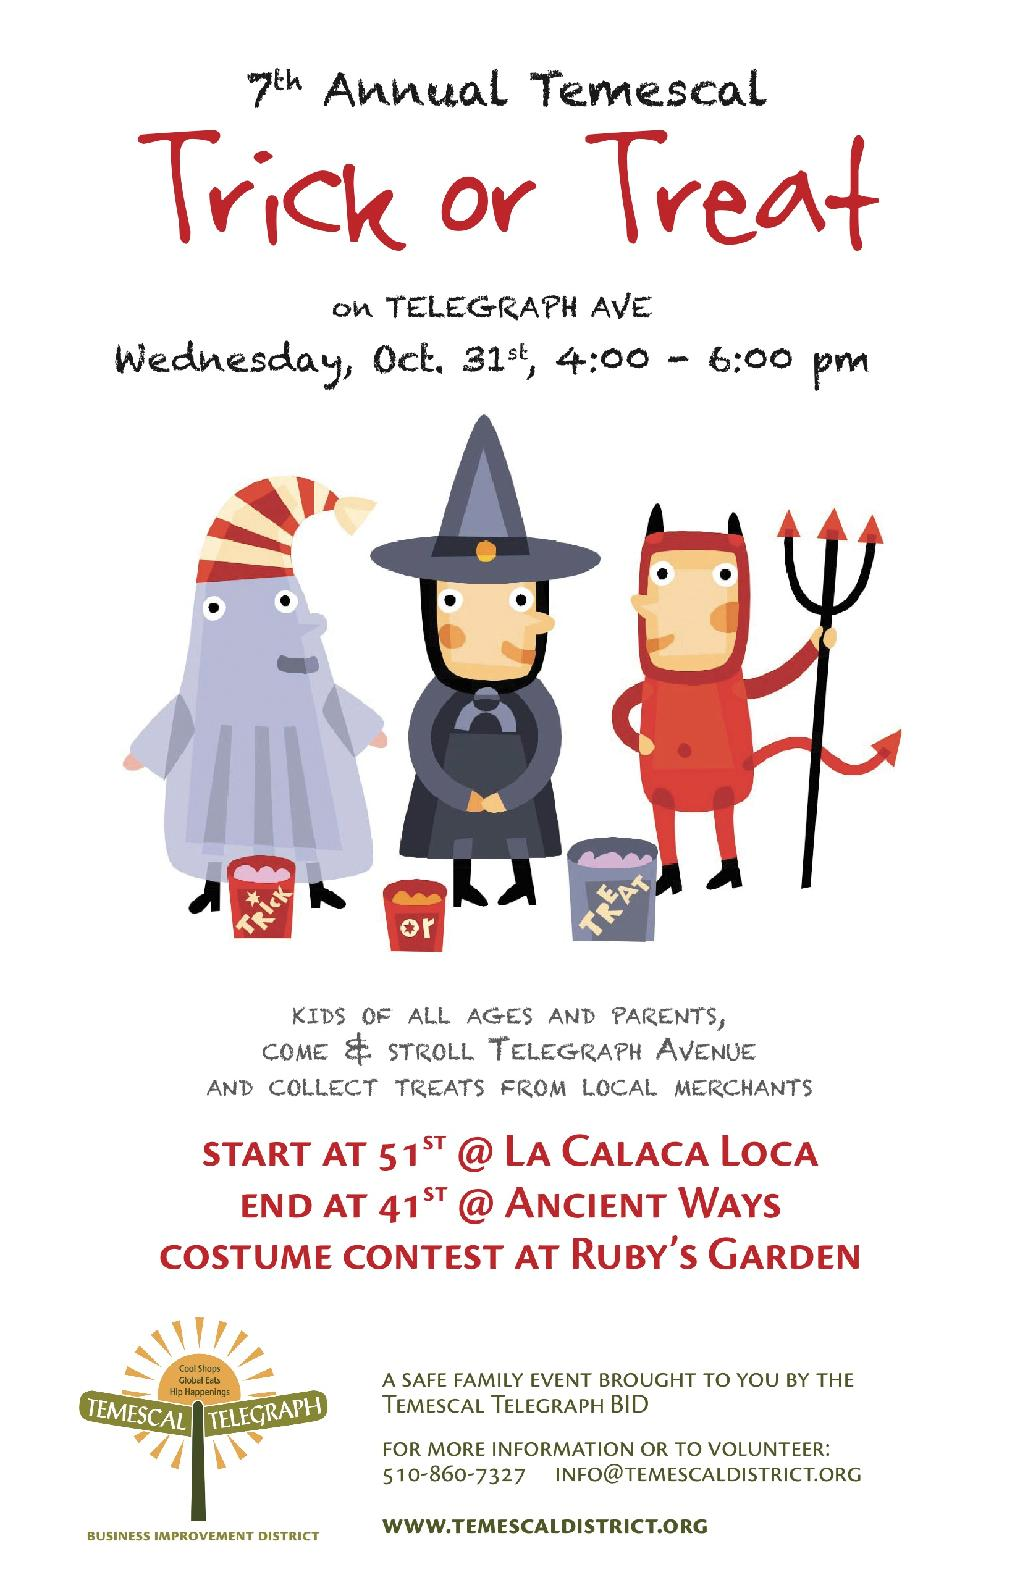 The 7th Annual Temescal Trick or Treat is October 31st!